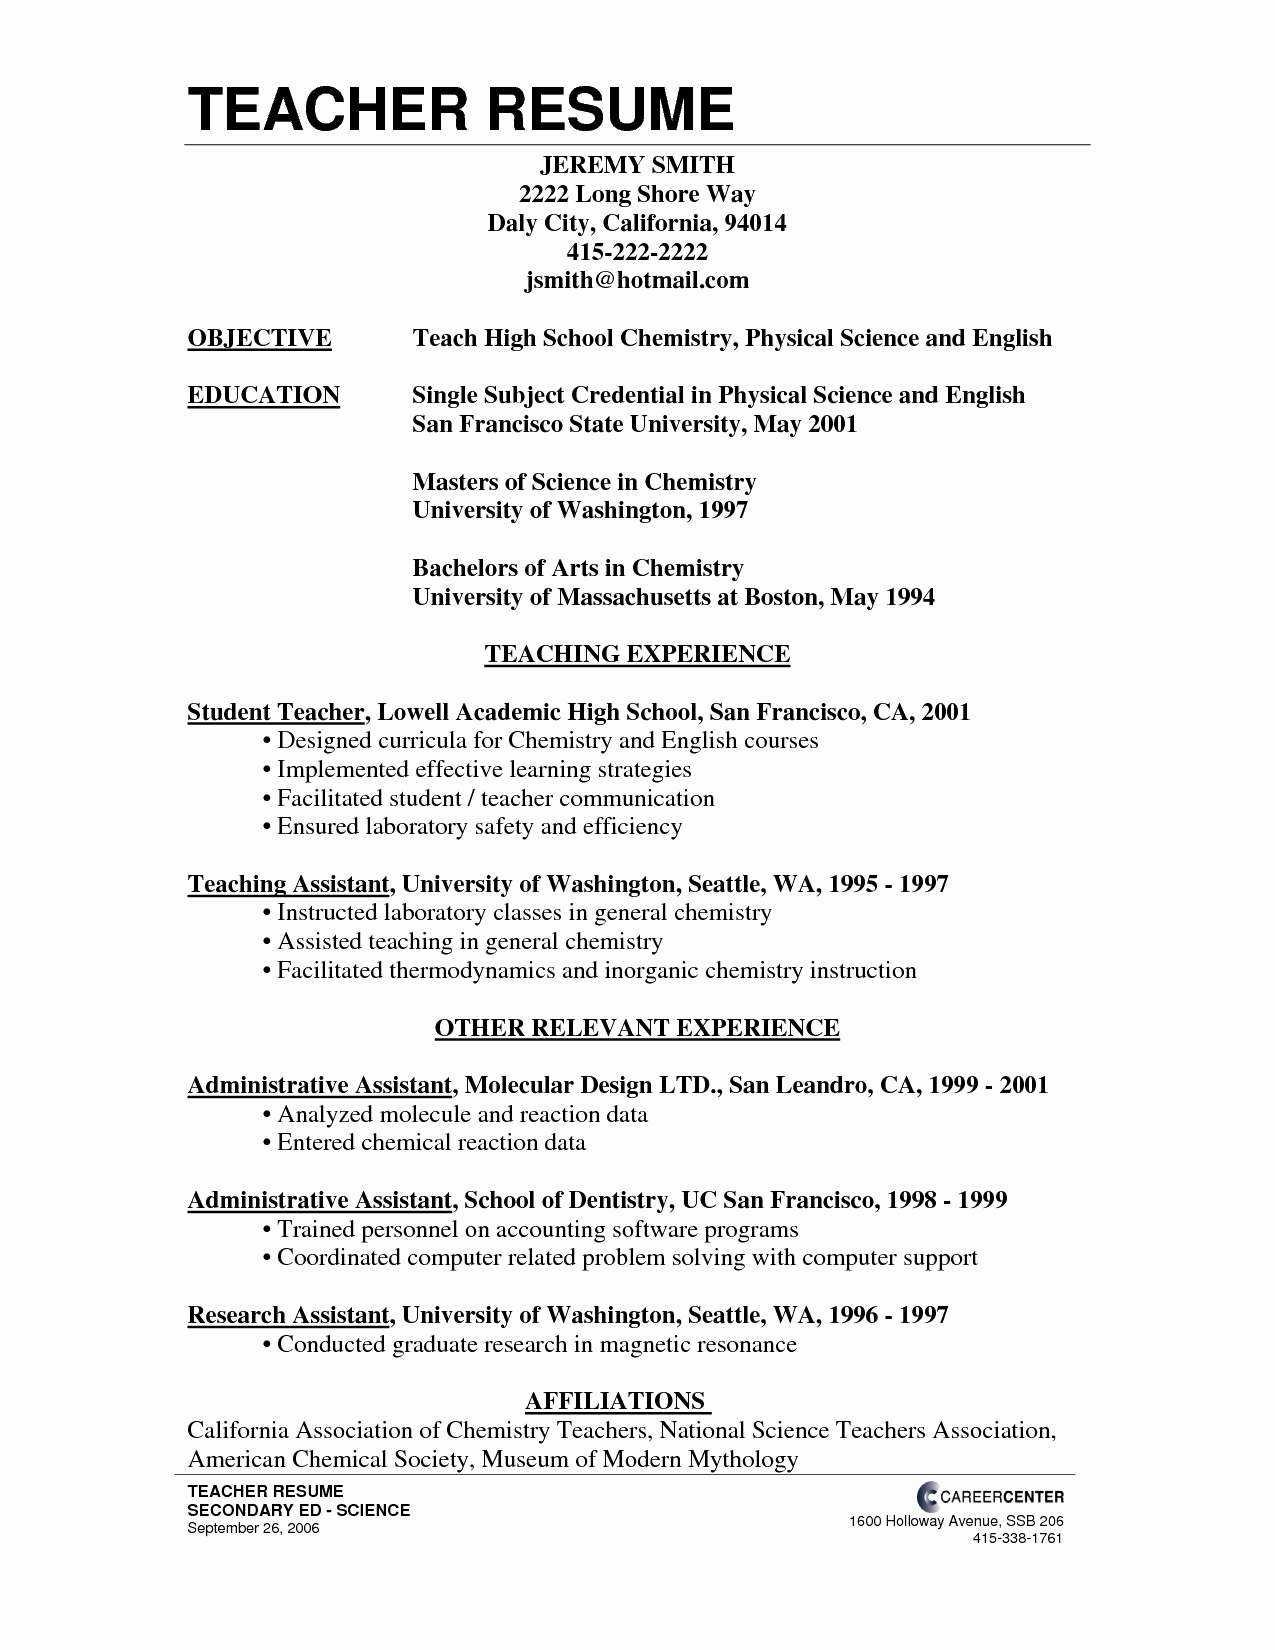 General Cover Letter Template - General Cover Letter for Resume Luxury Free Cover Letter Templates